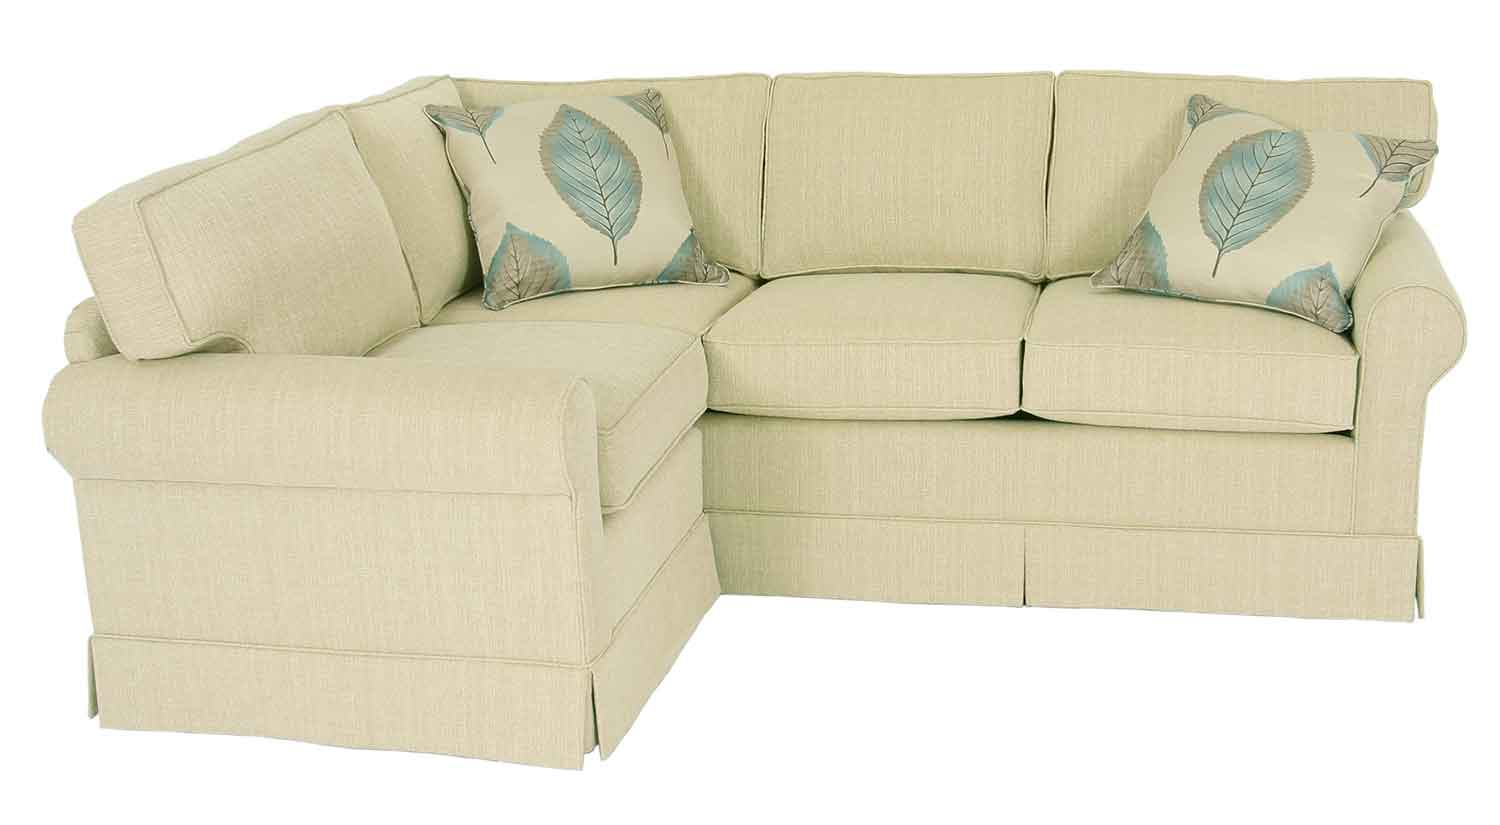 Copley square bedroom furniture - Copley Sectional